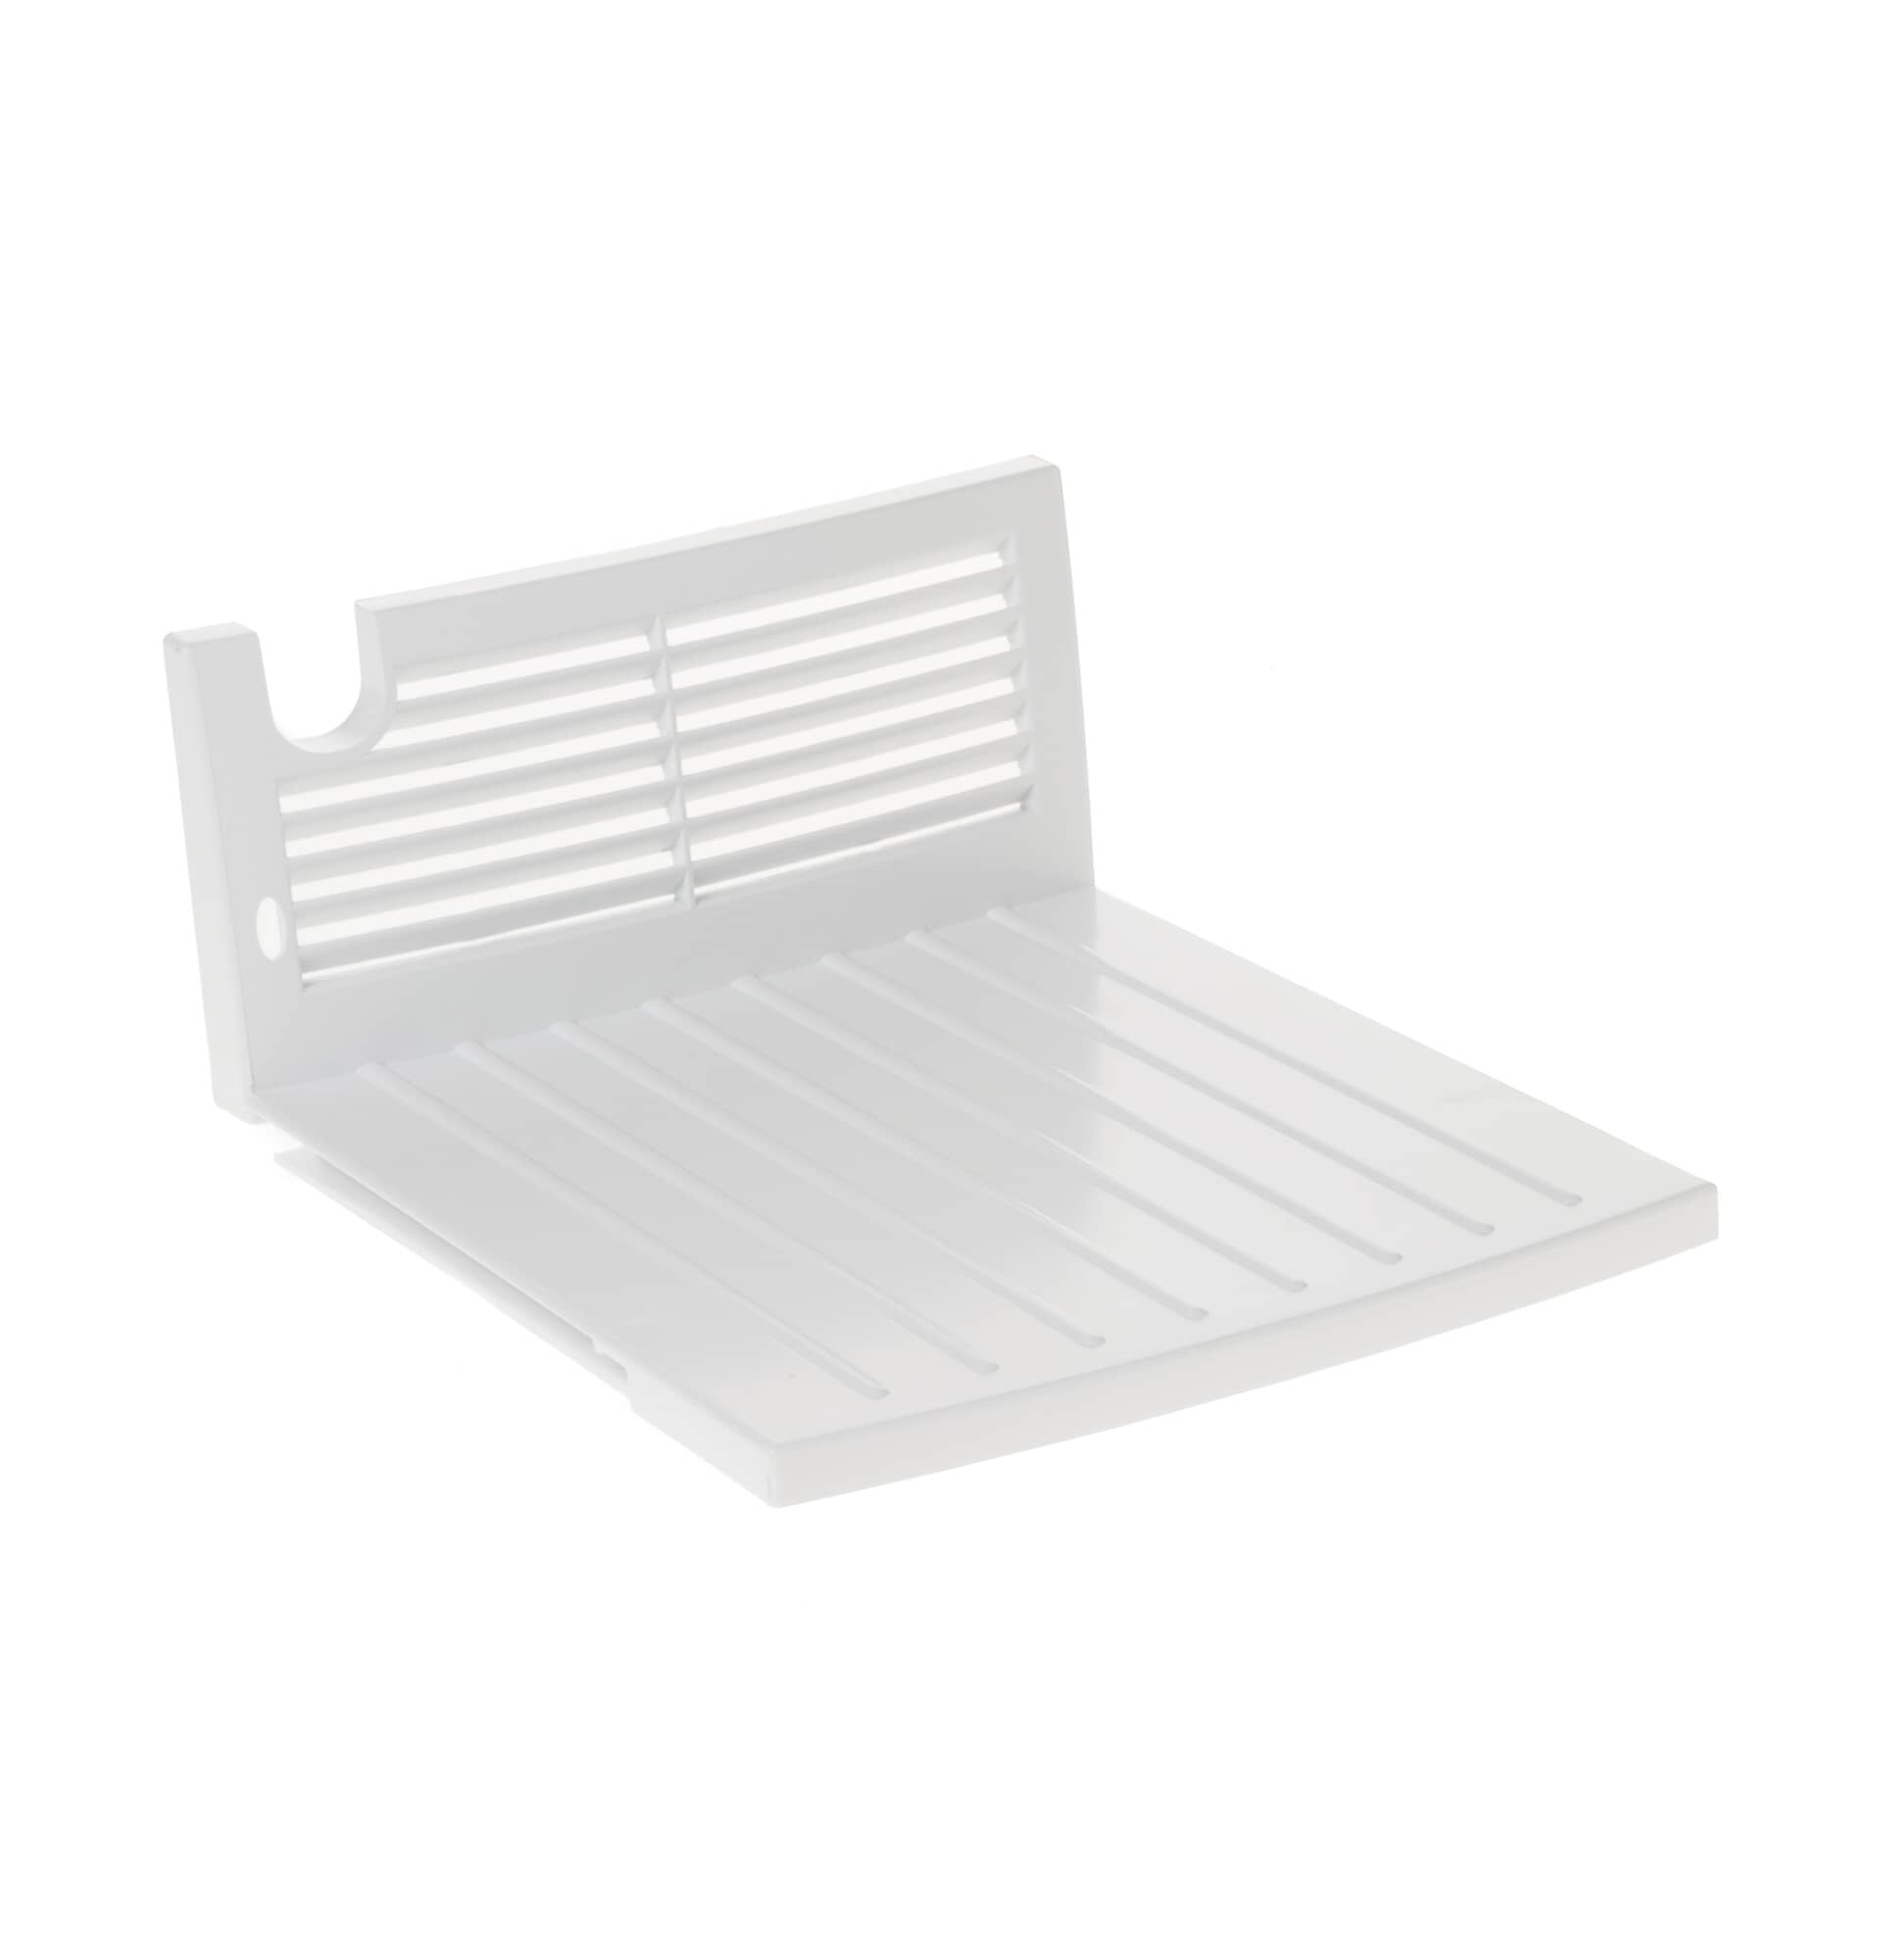 Whirlpool WR71X10961 SHELF